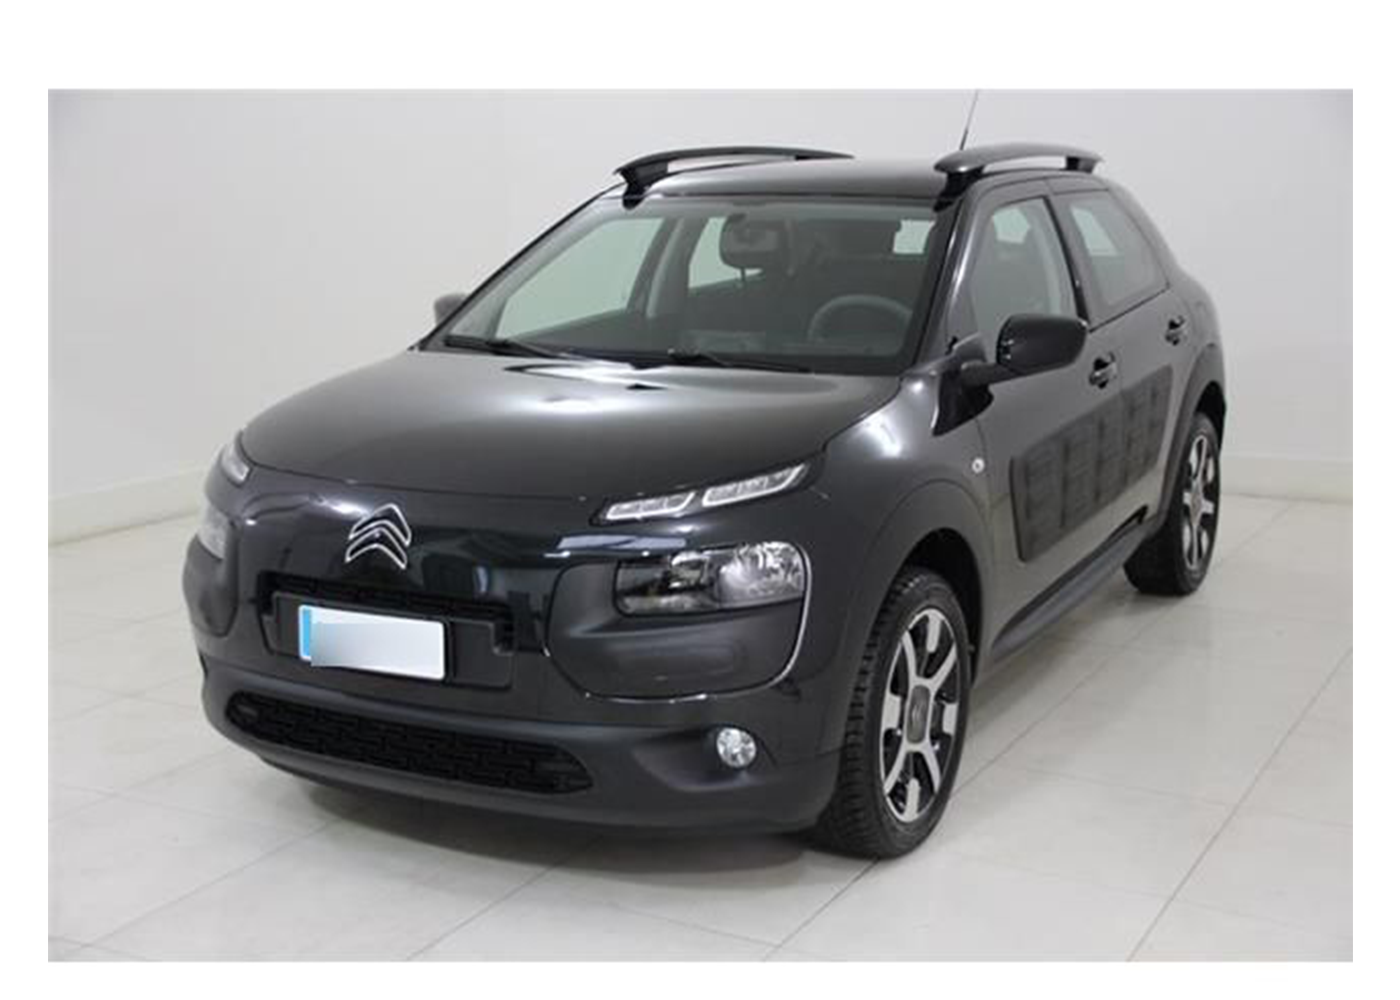 citroen c4 cactus bluehdi 100 feel edition night black km0 a soli 14990 su miacar qbbee. Black Bedroom Furniture Sets. Home Design Ideas